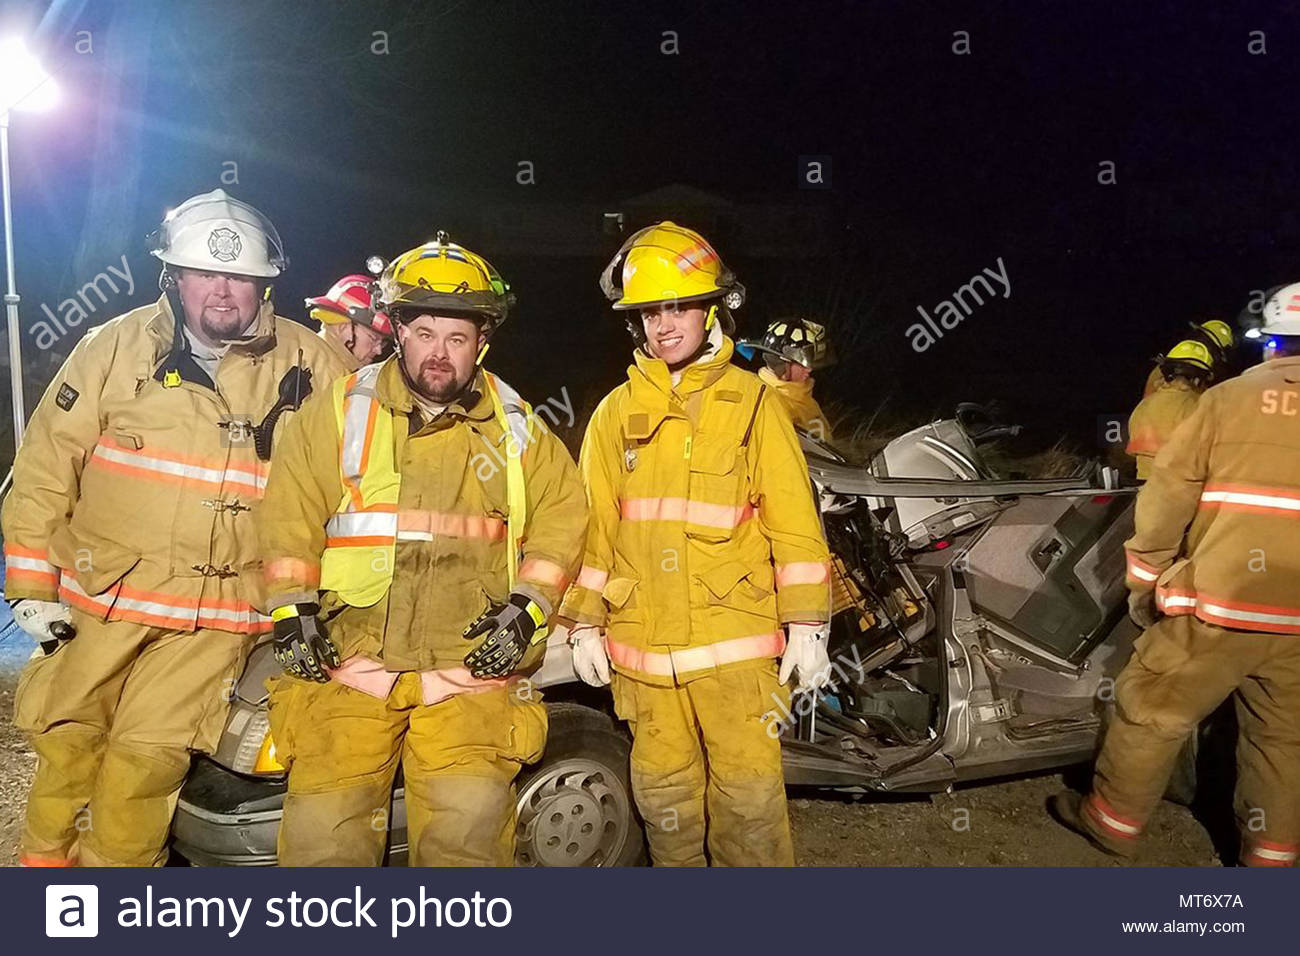 Sean Baker, middle, volunteer firefighter and aircrew flight equipment mechanic for M1 support services at the 40th Helicopter Squadron, poses for a photo after extraction training Mar. 21, 2017, at the Sand Coulee Volunteer Fire Department, Mont. Baker has been a volunteer firefighter for 18 years and was voted in as member of the SCFD in November 2016. (Courtesy photo) - Stock Image